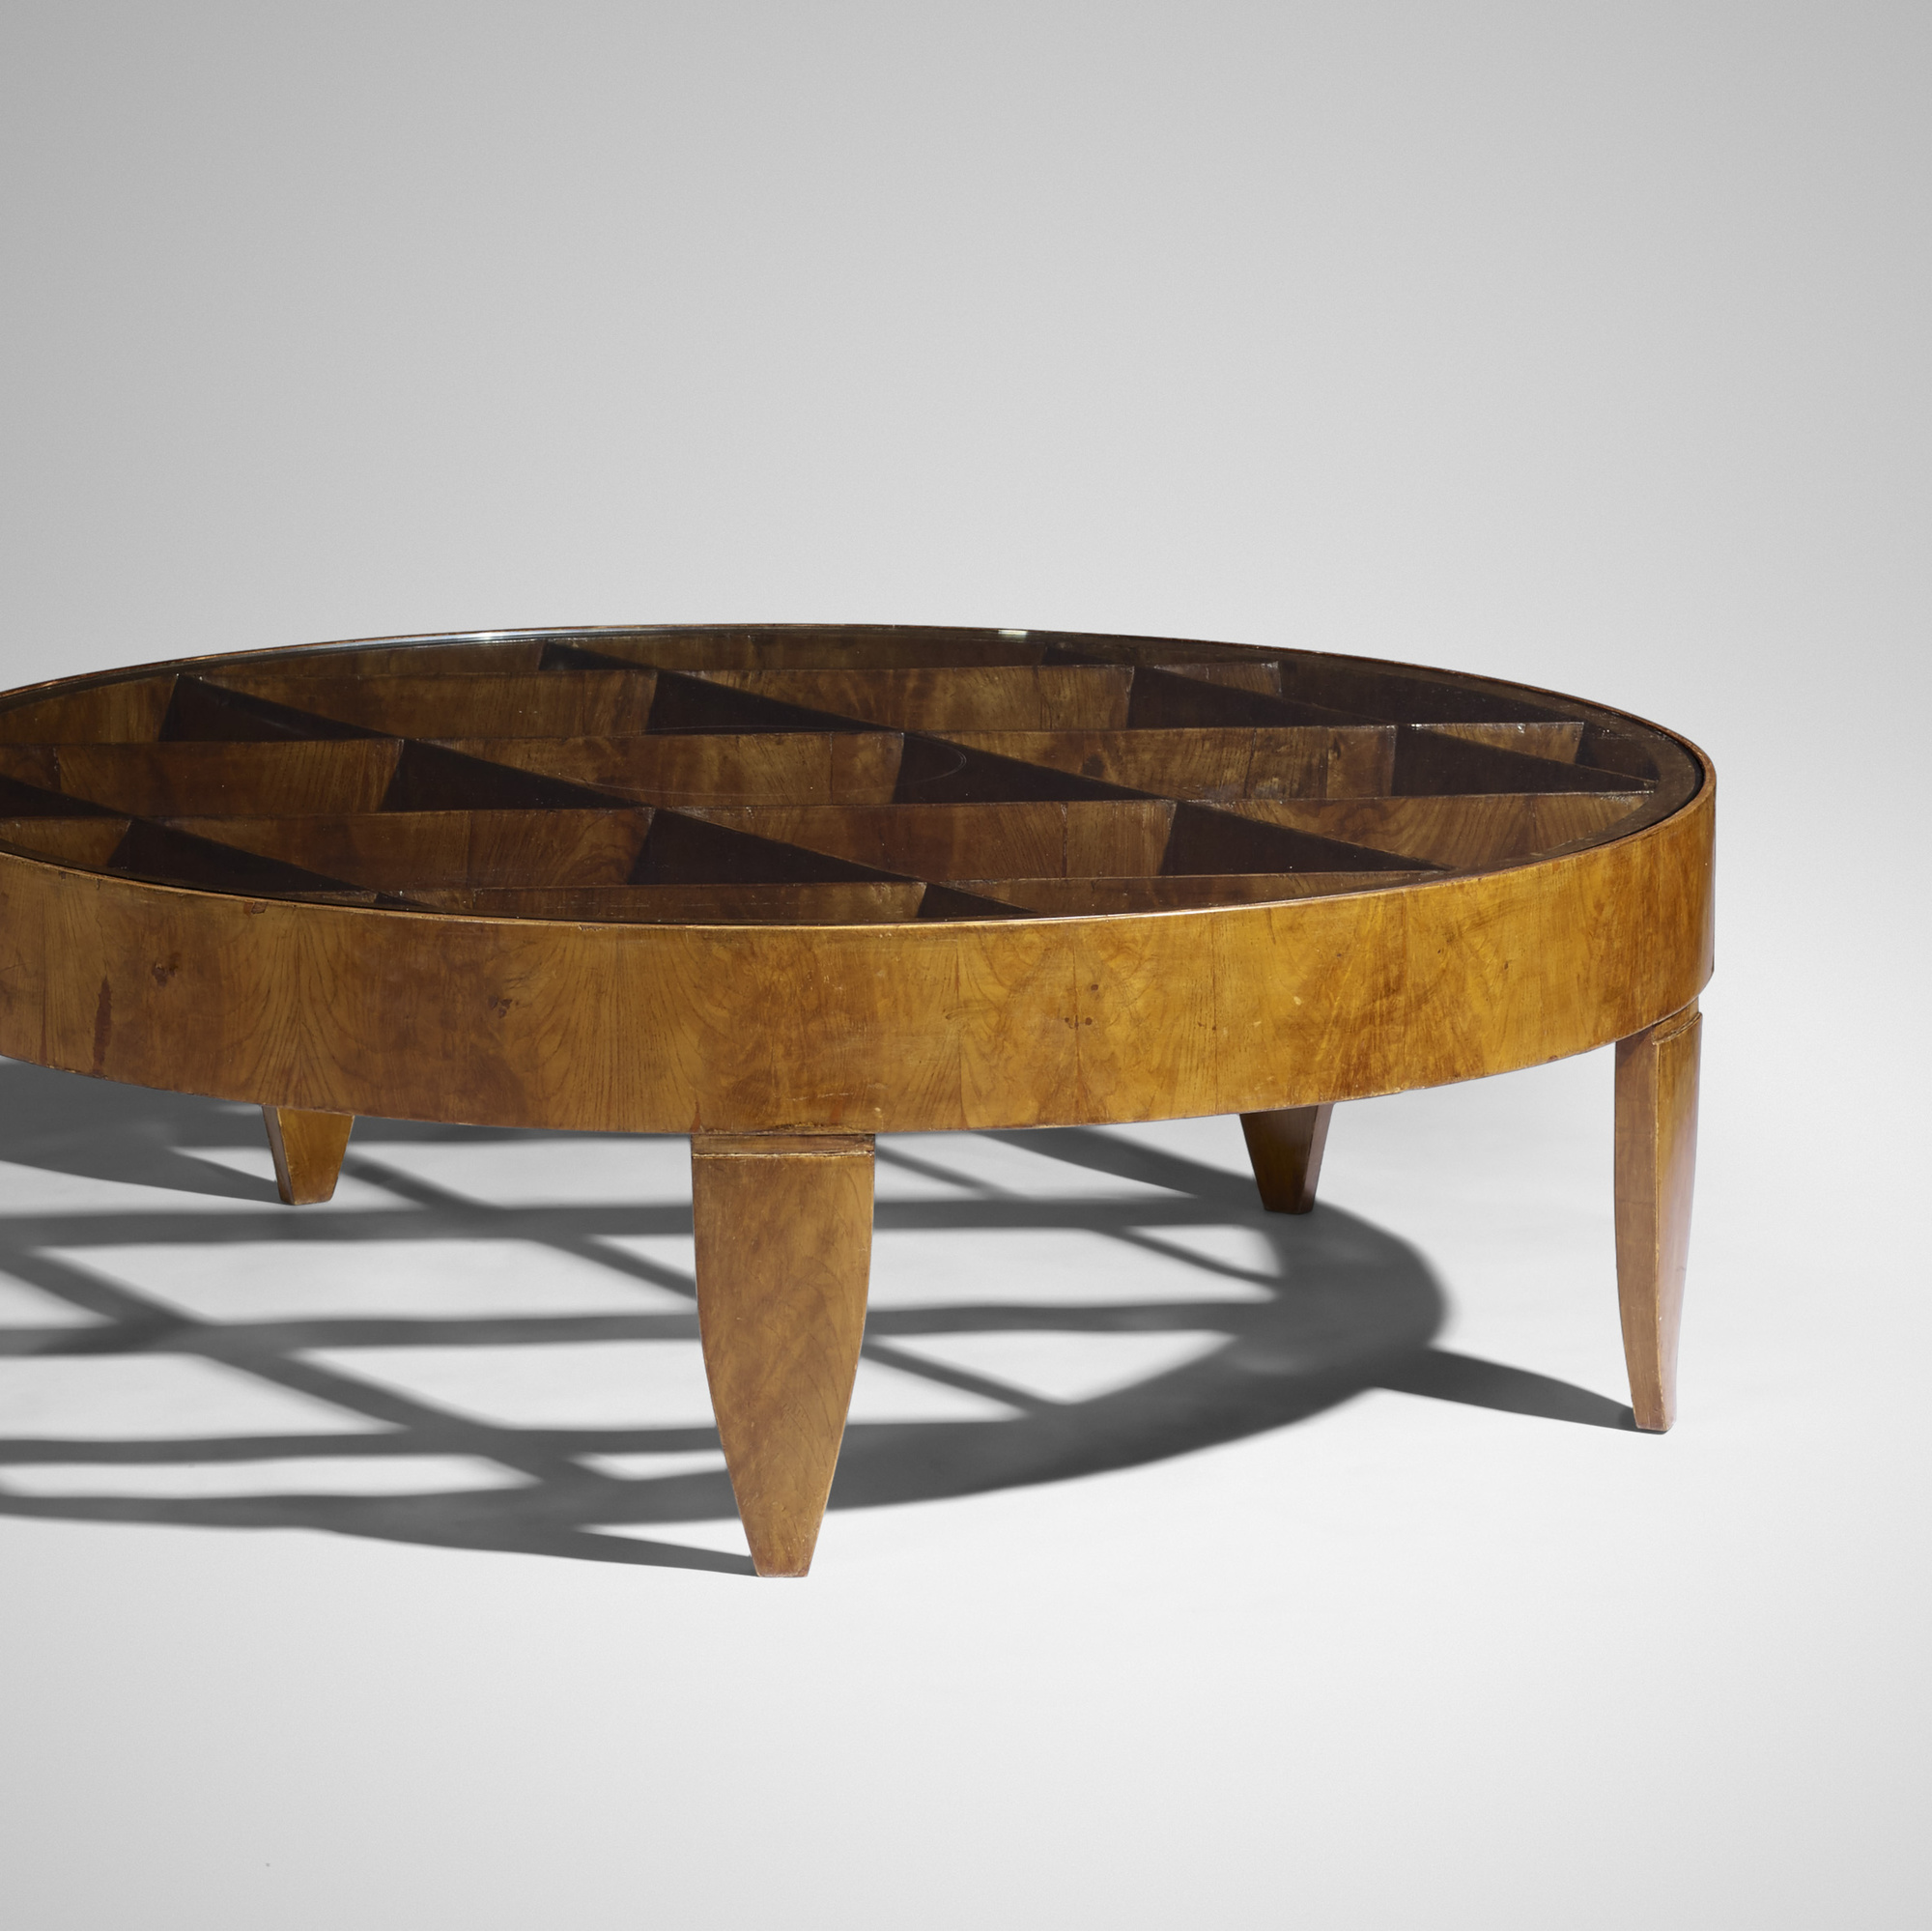 14 GIO PONTI Rare coffee table Design Masterworks 19 May 2016